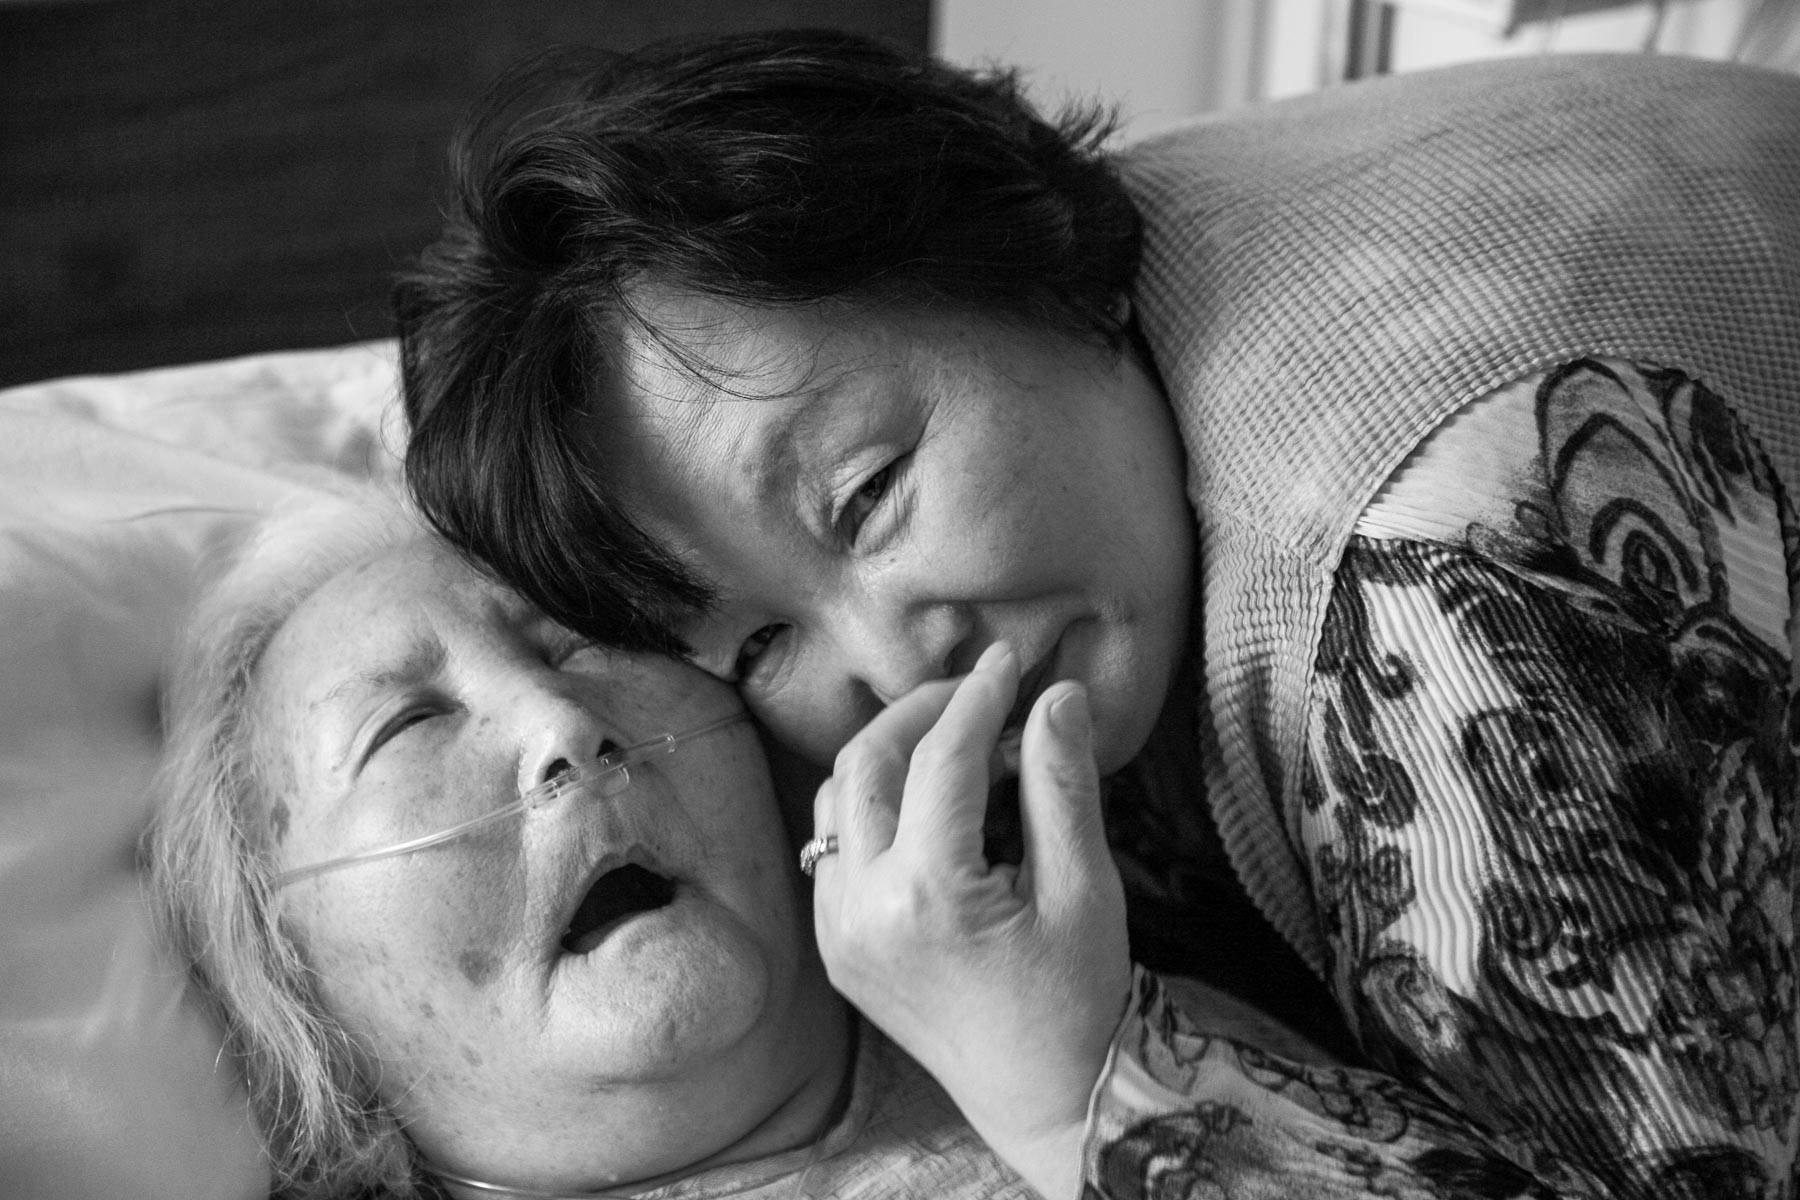 """A NEW CITIZEN""    A photo documentary that follows Hwayoung Shin, a recent immigrant from South Korea who came to the United States to care for her ailing mother who was stricken with Alzheimer's Disease. After her mother's passing, she makes the decision to stay in the U.S, as she attempts to learn American culture while maintaining her Korean heritage."